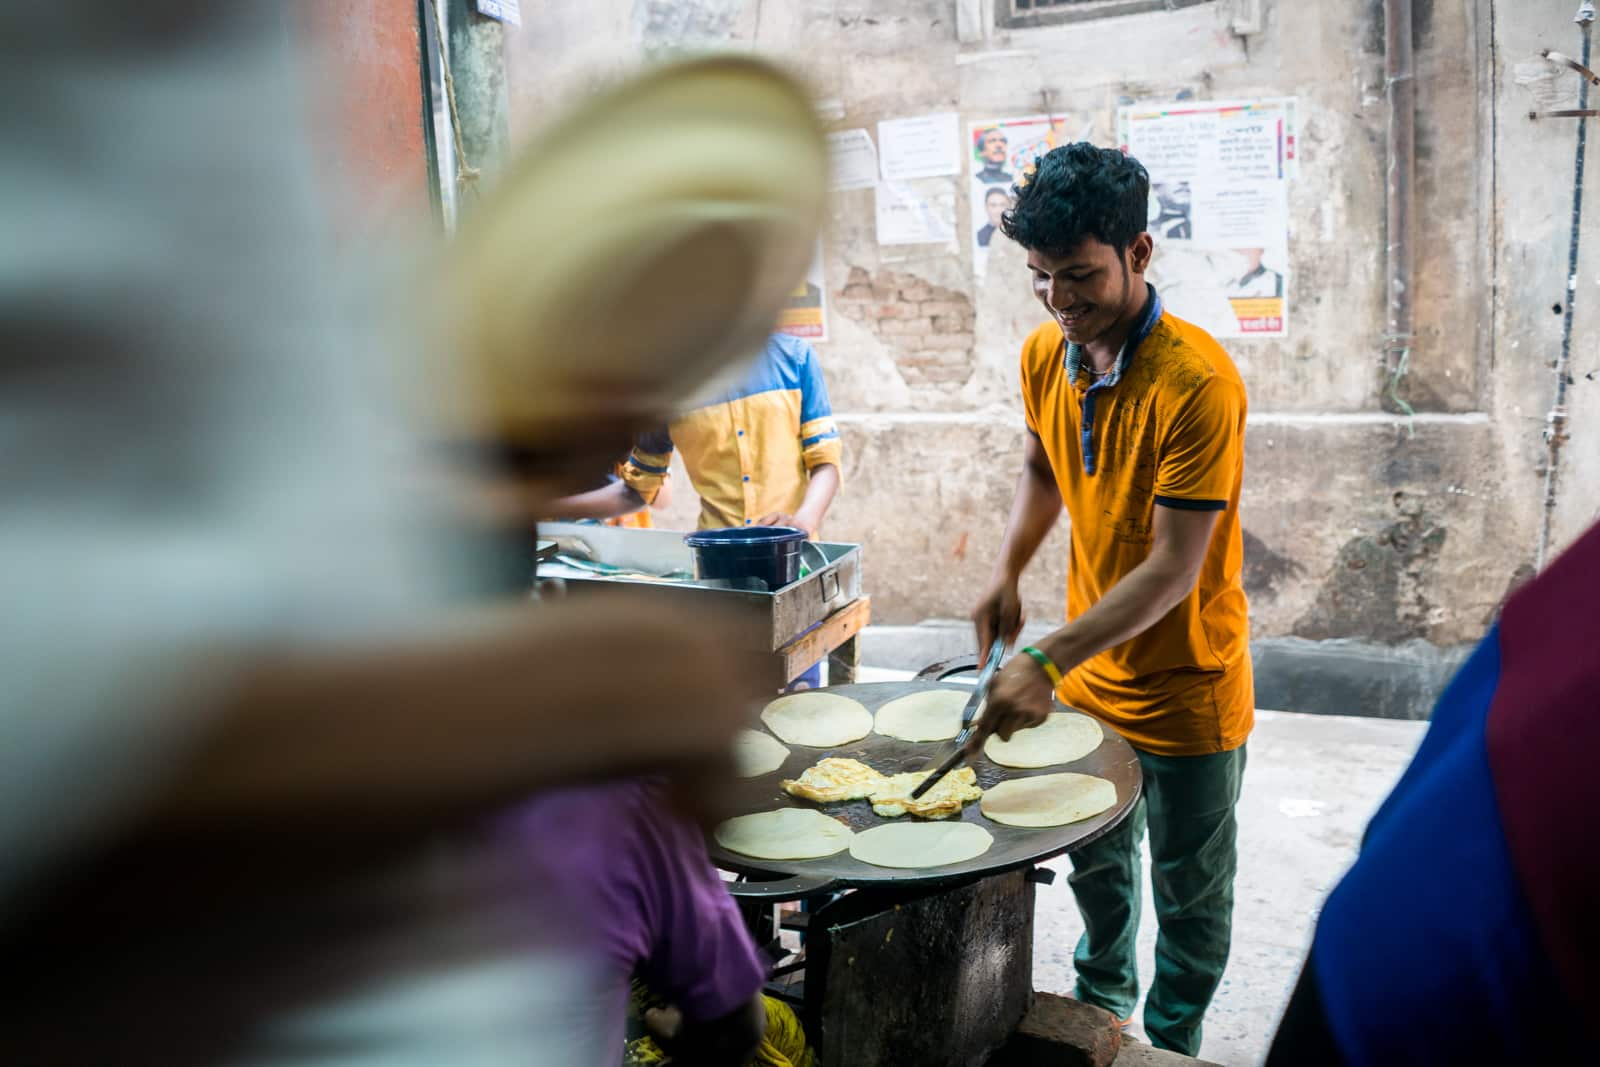 Travel guide to backpacking in Bangladesh - Cheap breakfast in Old Dhaka - Lost With Purpose travel blog